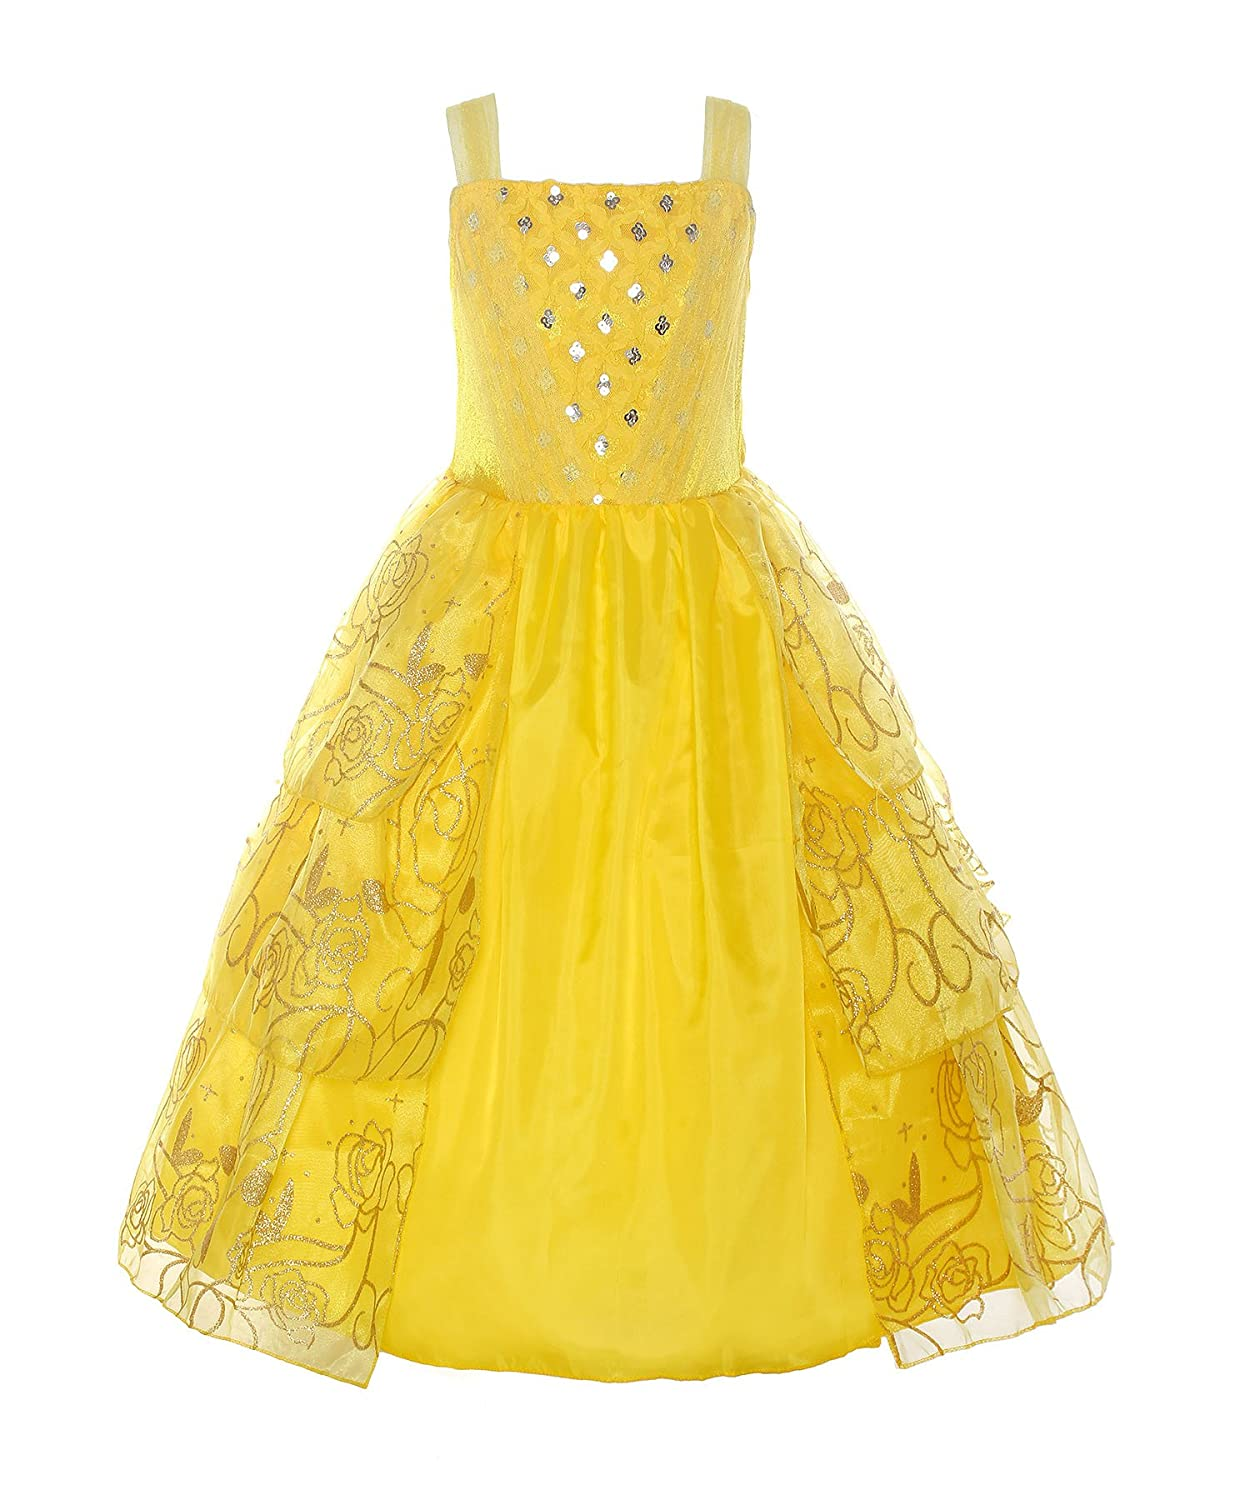 ReliBeauty Girls Sleeveless Sequin Princess Belle Costume Dress up Yellow Gold Ball Gown outfit fancy dress